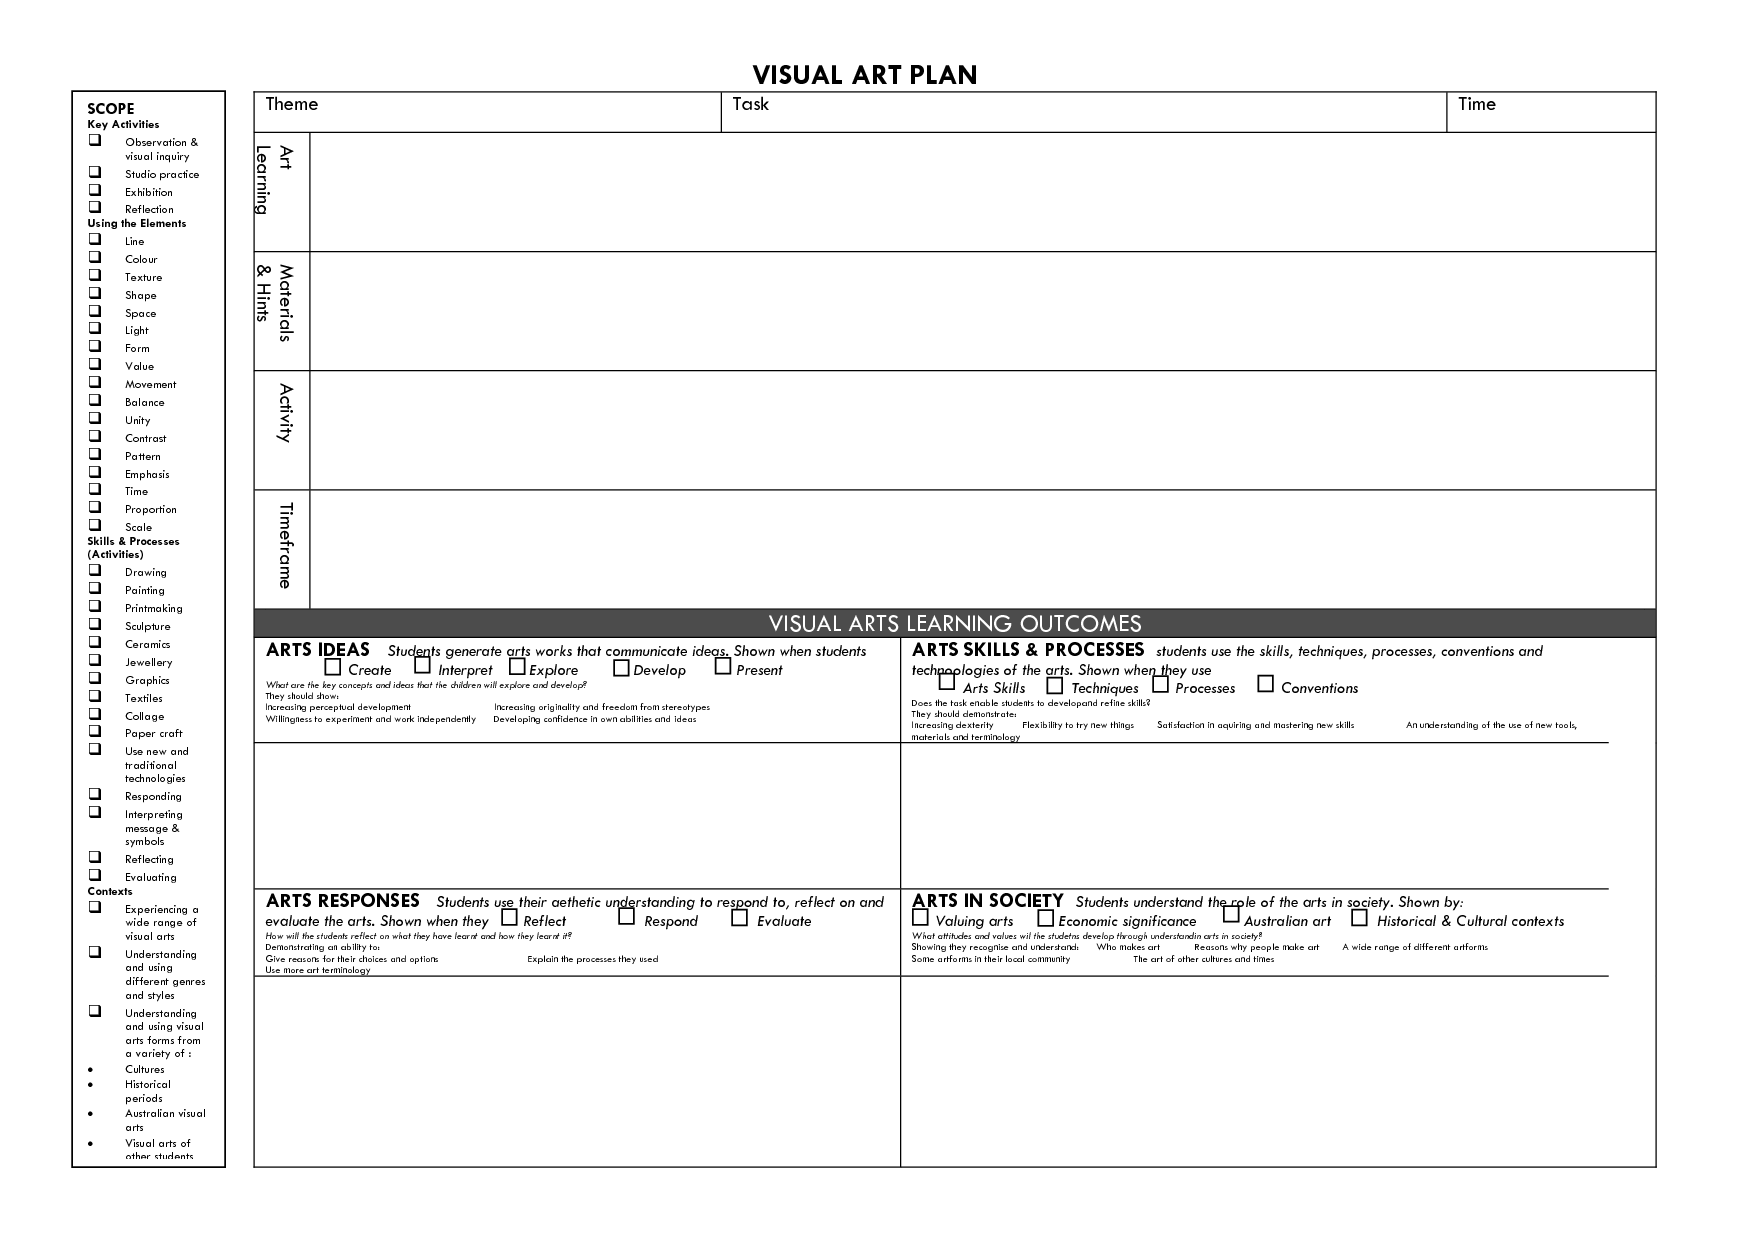 visual art lesson plan template  Visual Arts Lesson Plan Template | VISUAL ART PLAN | art ..